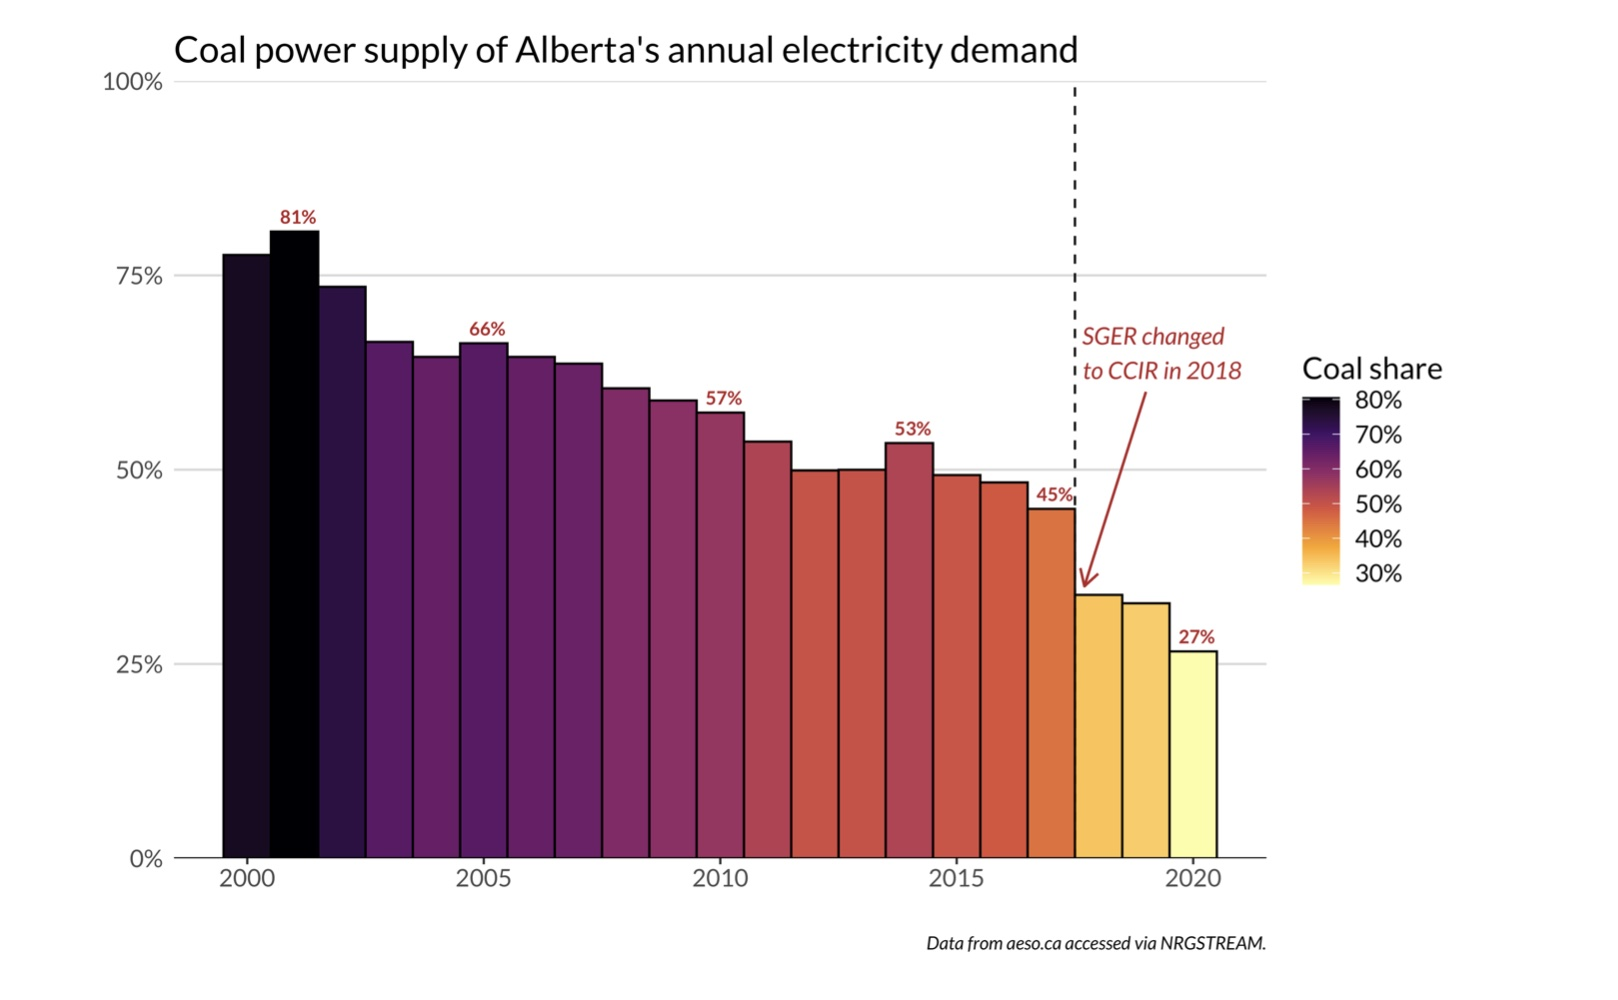 Chart showing coal power supply in Alberta